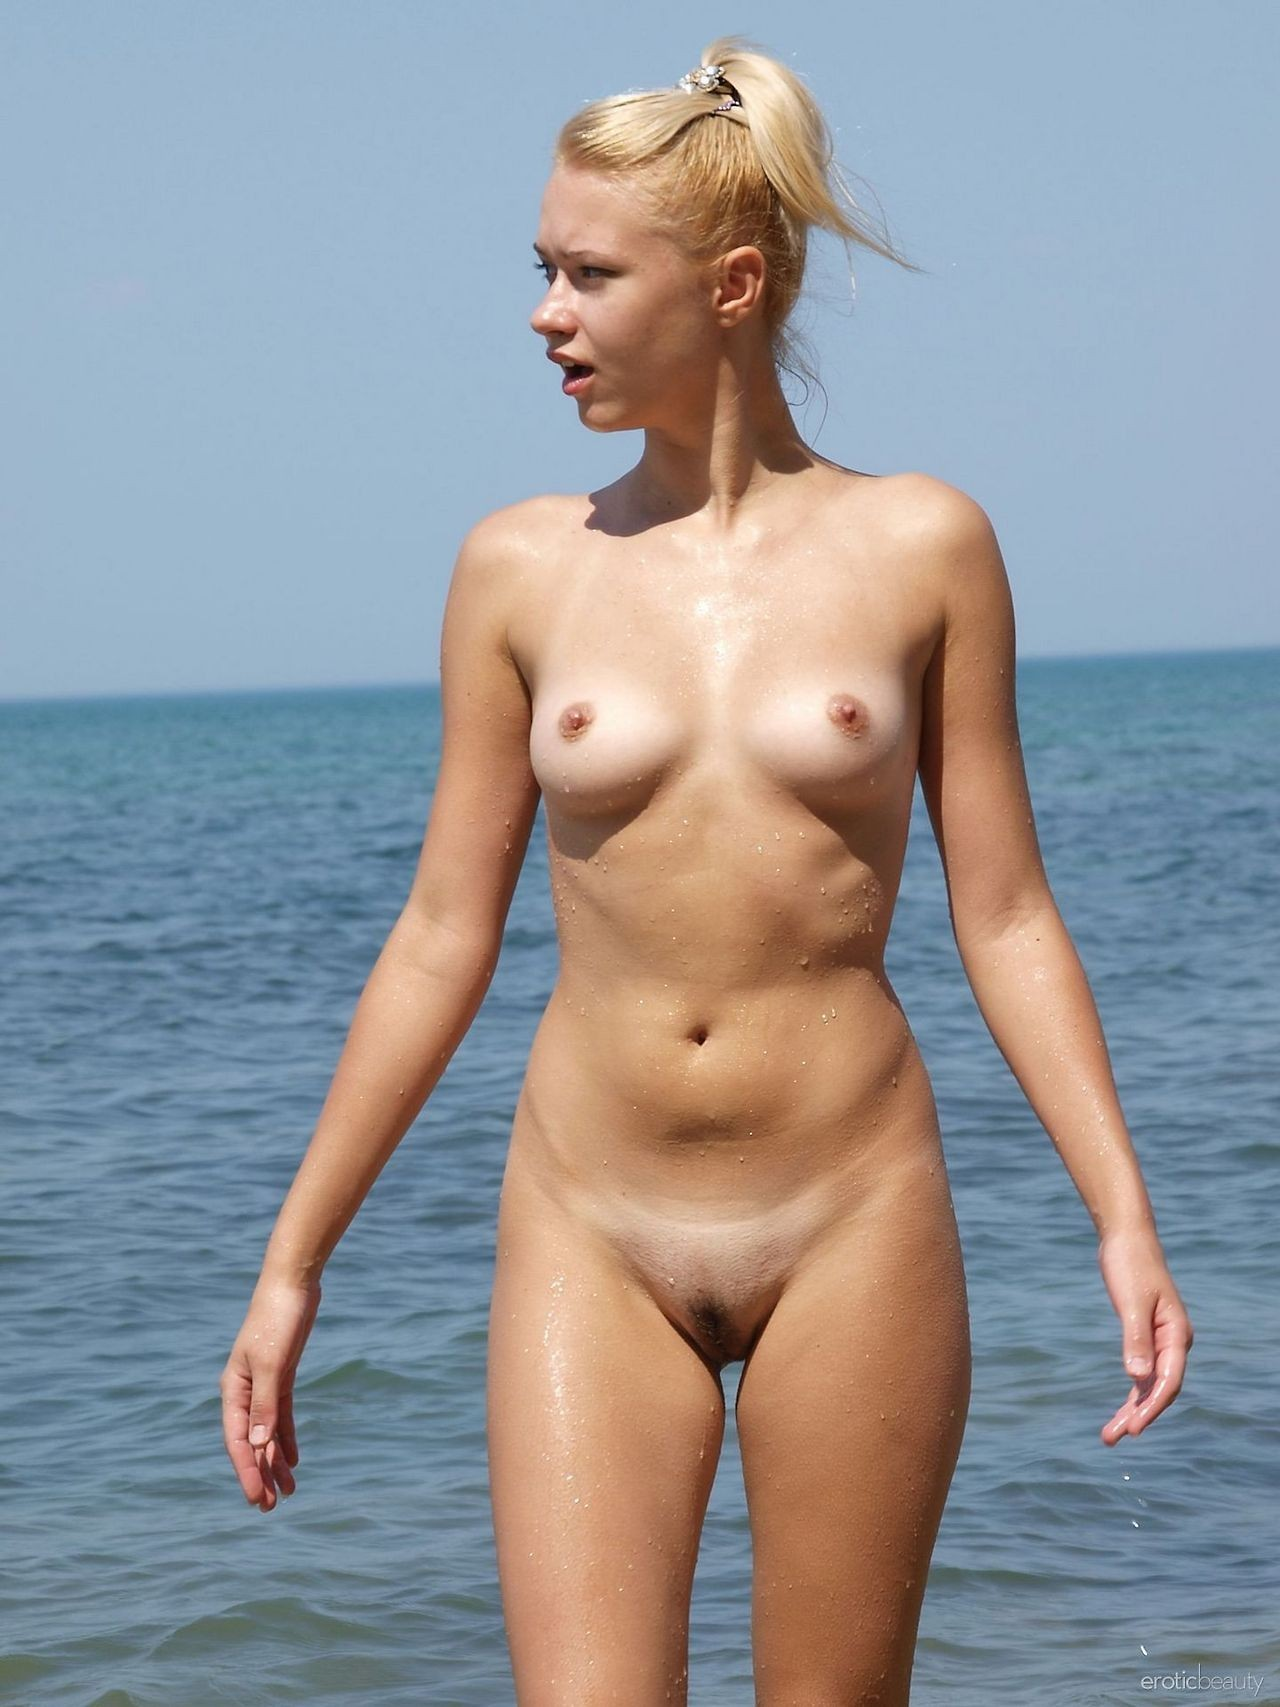 nudists-girls-boobs-beach-topless-mix-vol7-05